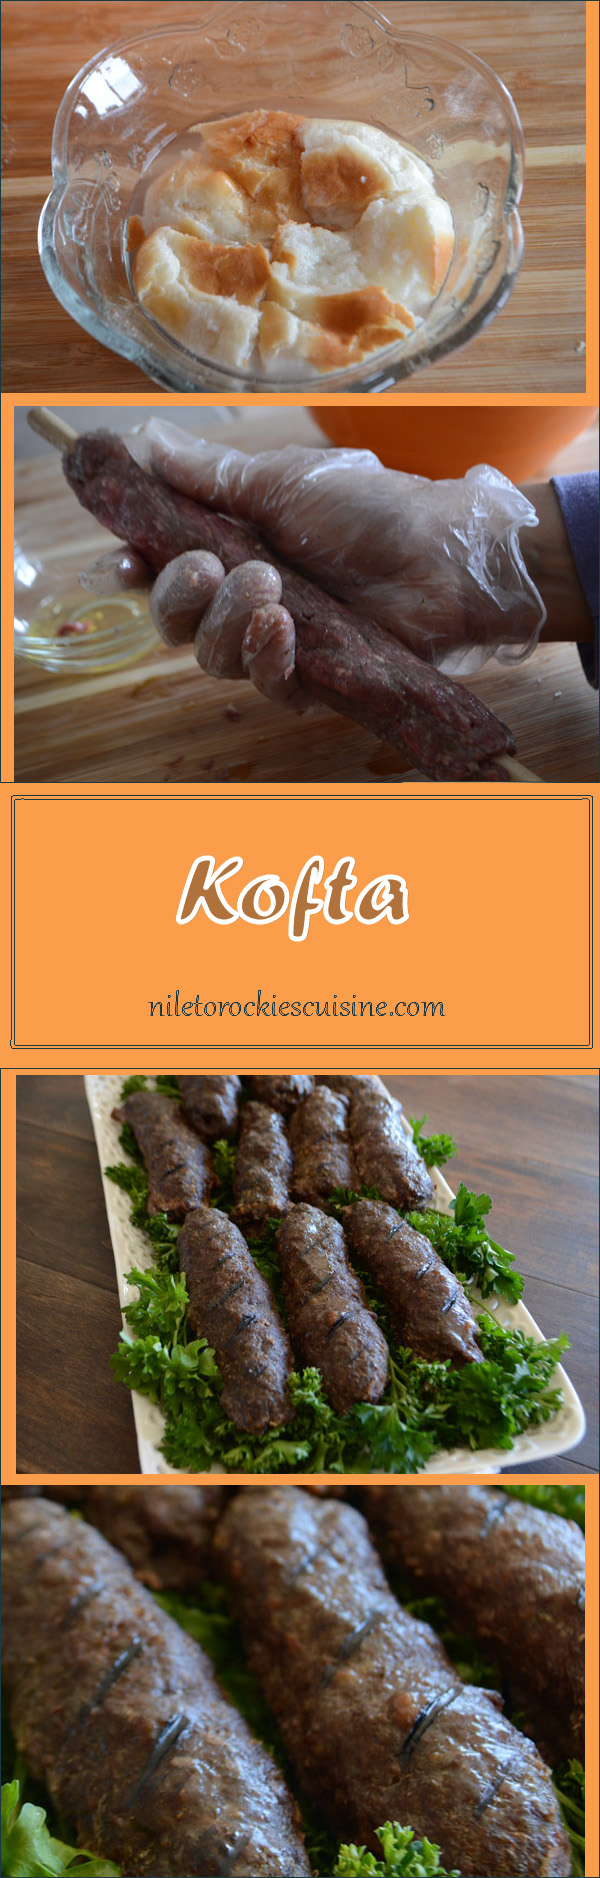 Kofta is the Arabic term of meatballs but this is not just any meatballs recipe, this is my family's tender and juicy meatballs with all the secrets.